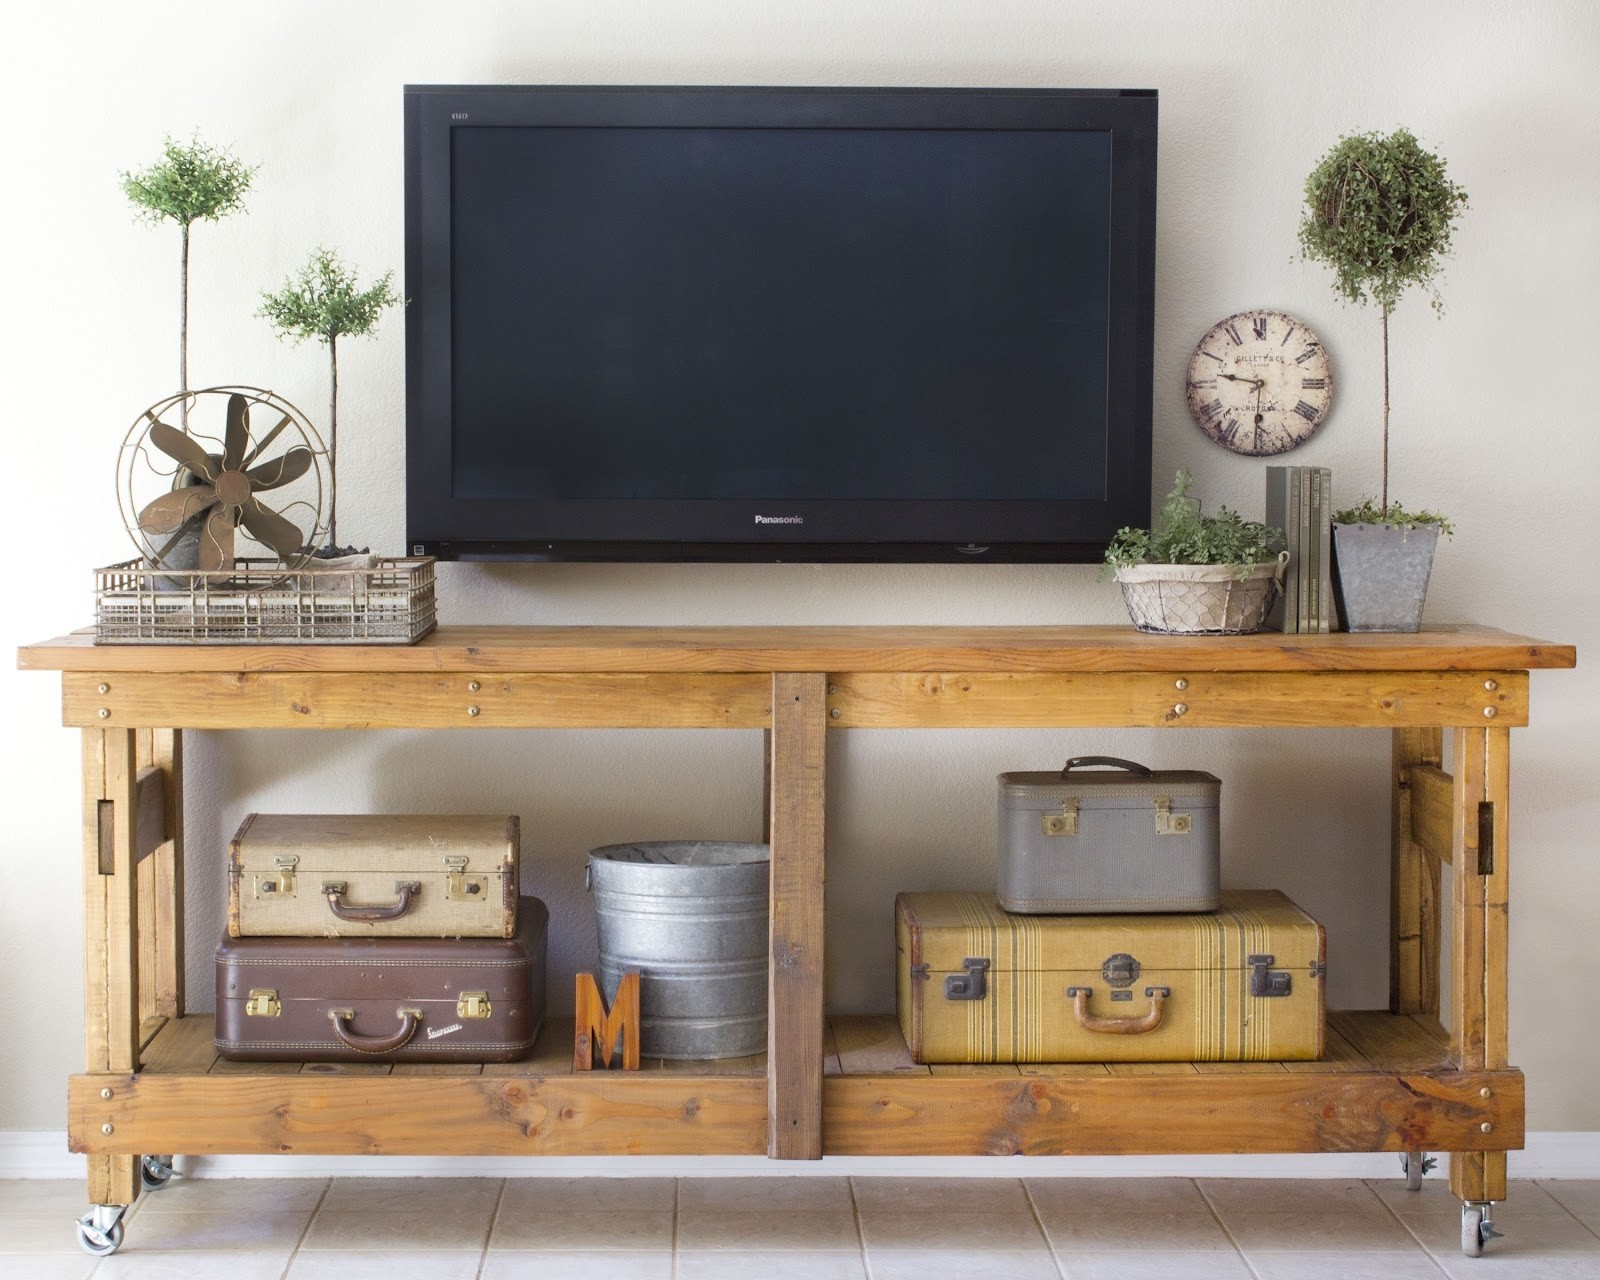 Merveilleux Refurbished Tv Stand